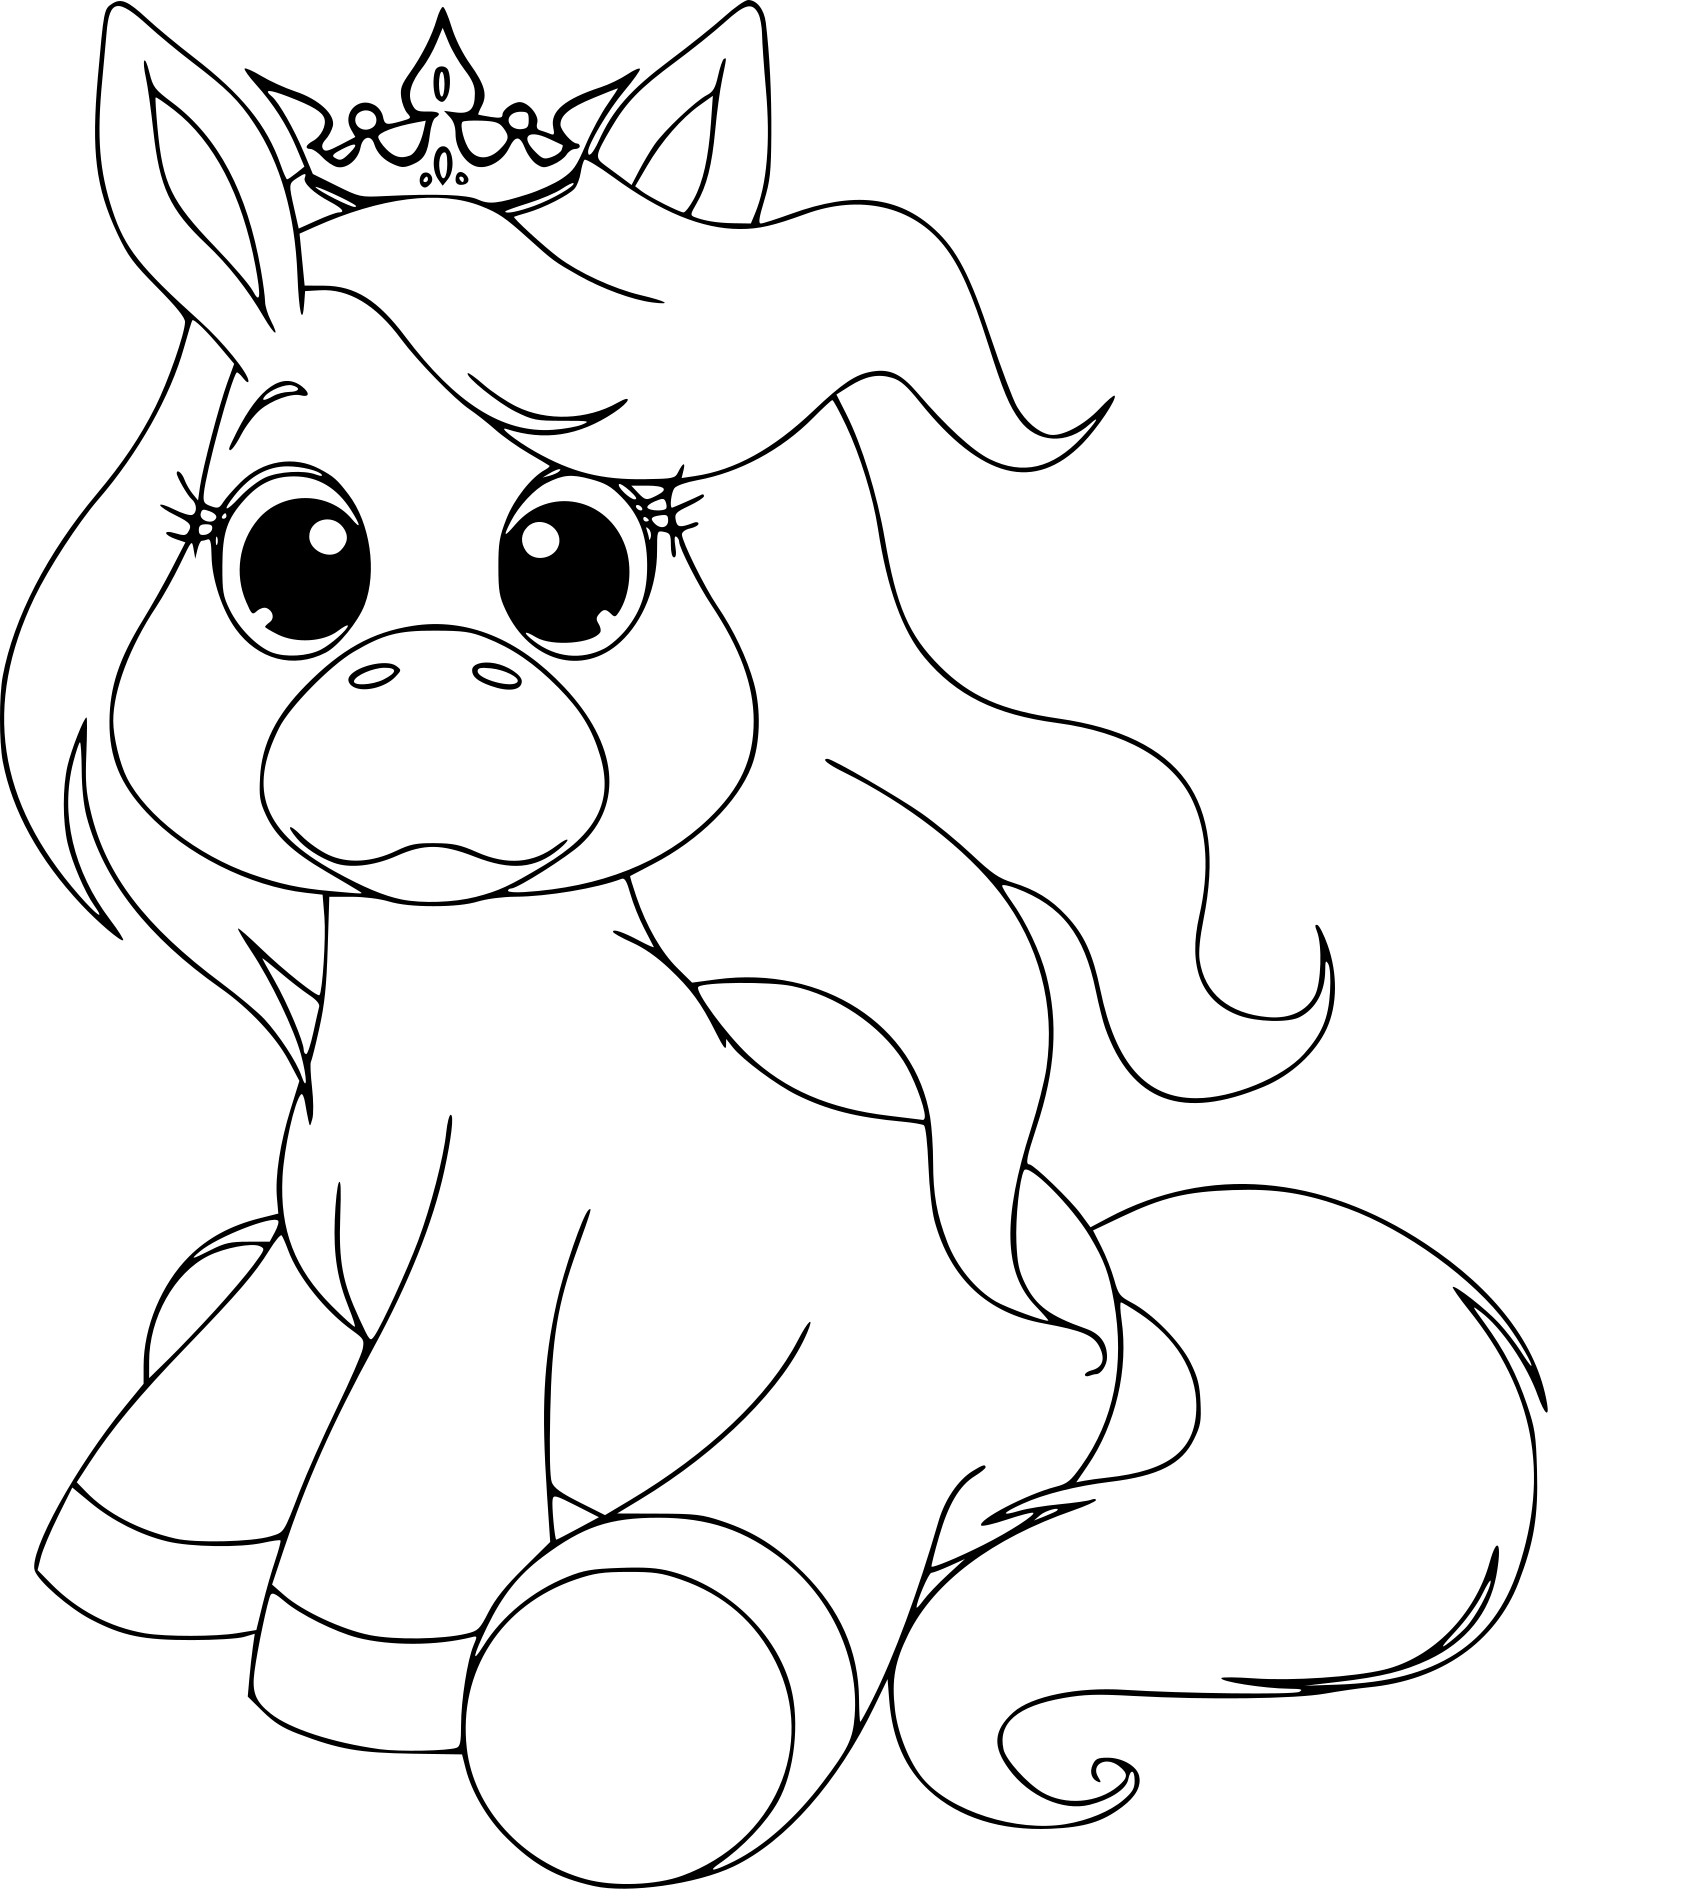 Coloriage Bebe Poney.Coloriage Bebe Poney A Imprimer